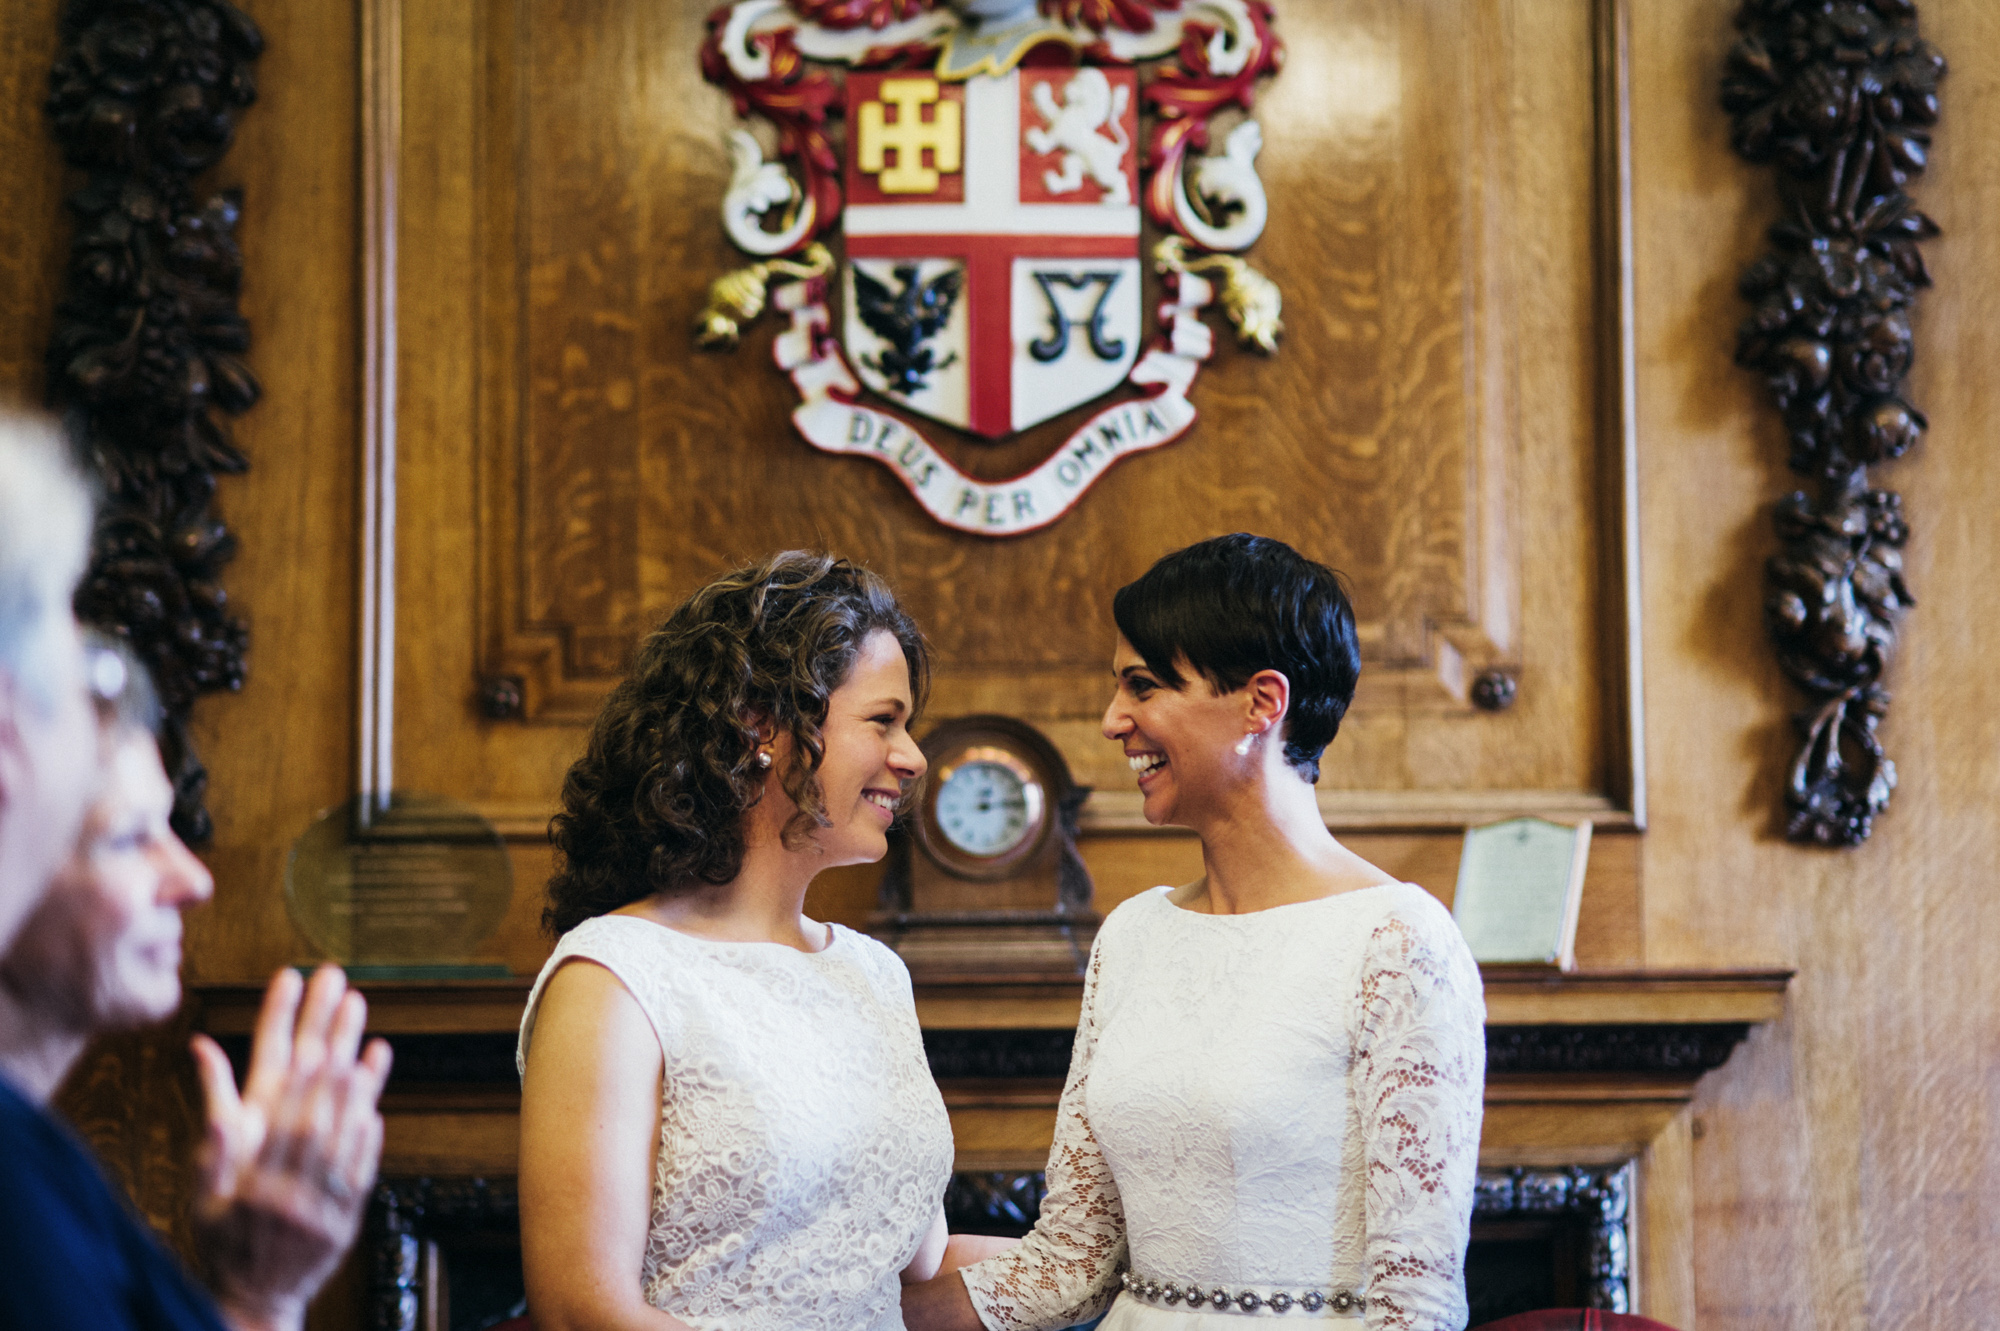 Gay wedding smiling brides at the Mayors parlour - gay wedding The Roost Dalston wedding - quirky London wedding photographer © Babb Photo